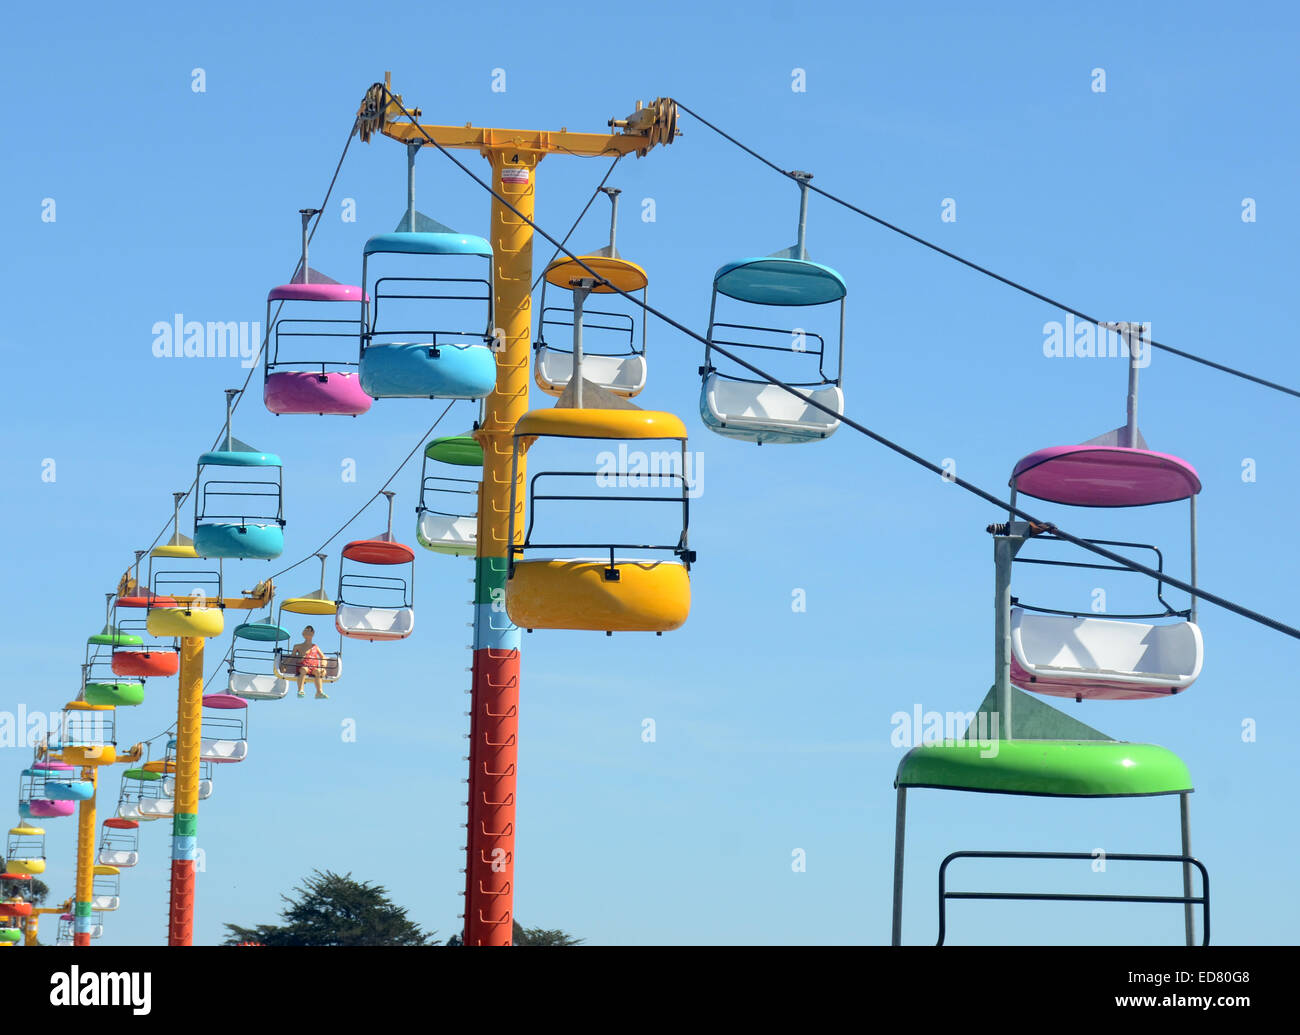 Colorful seats from amusement park ride against blue sky - Stock Image